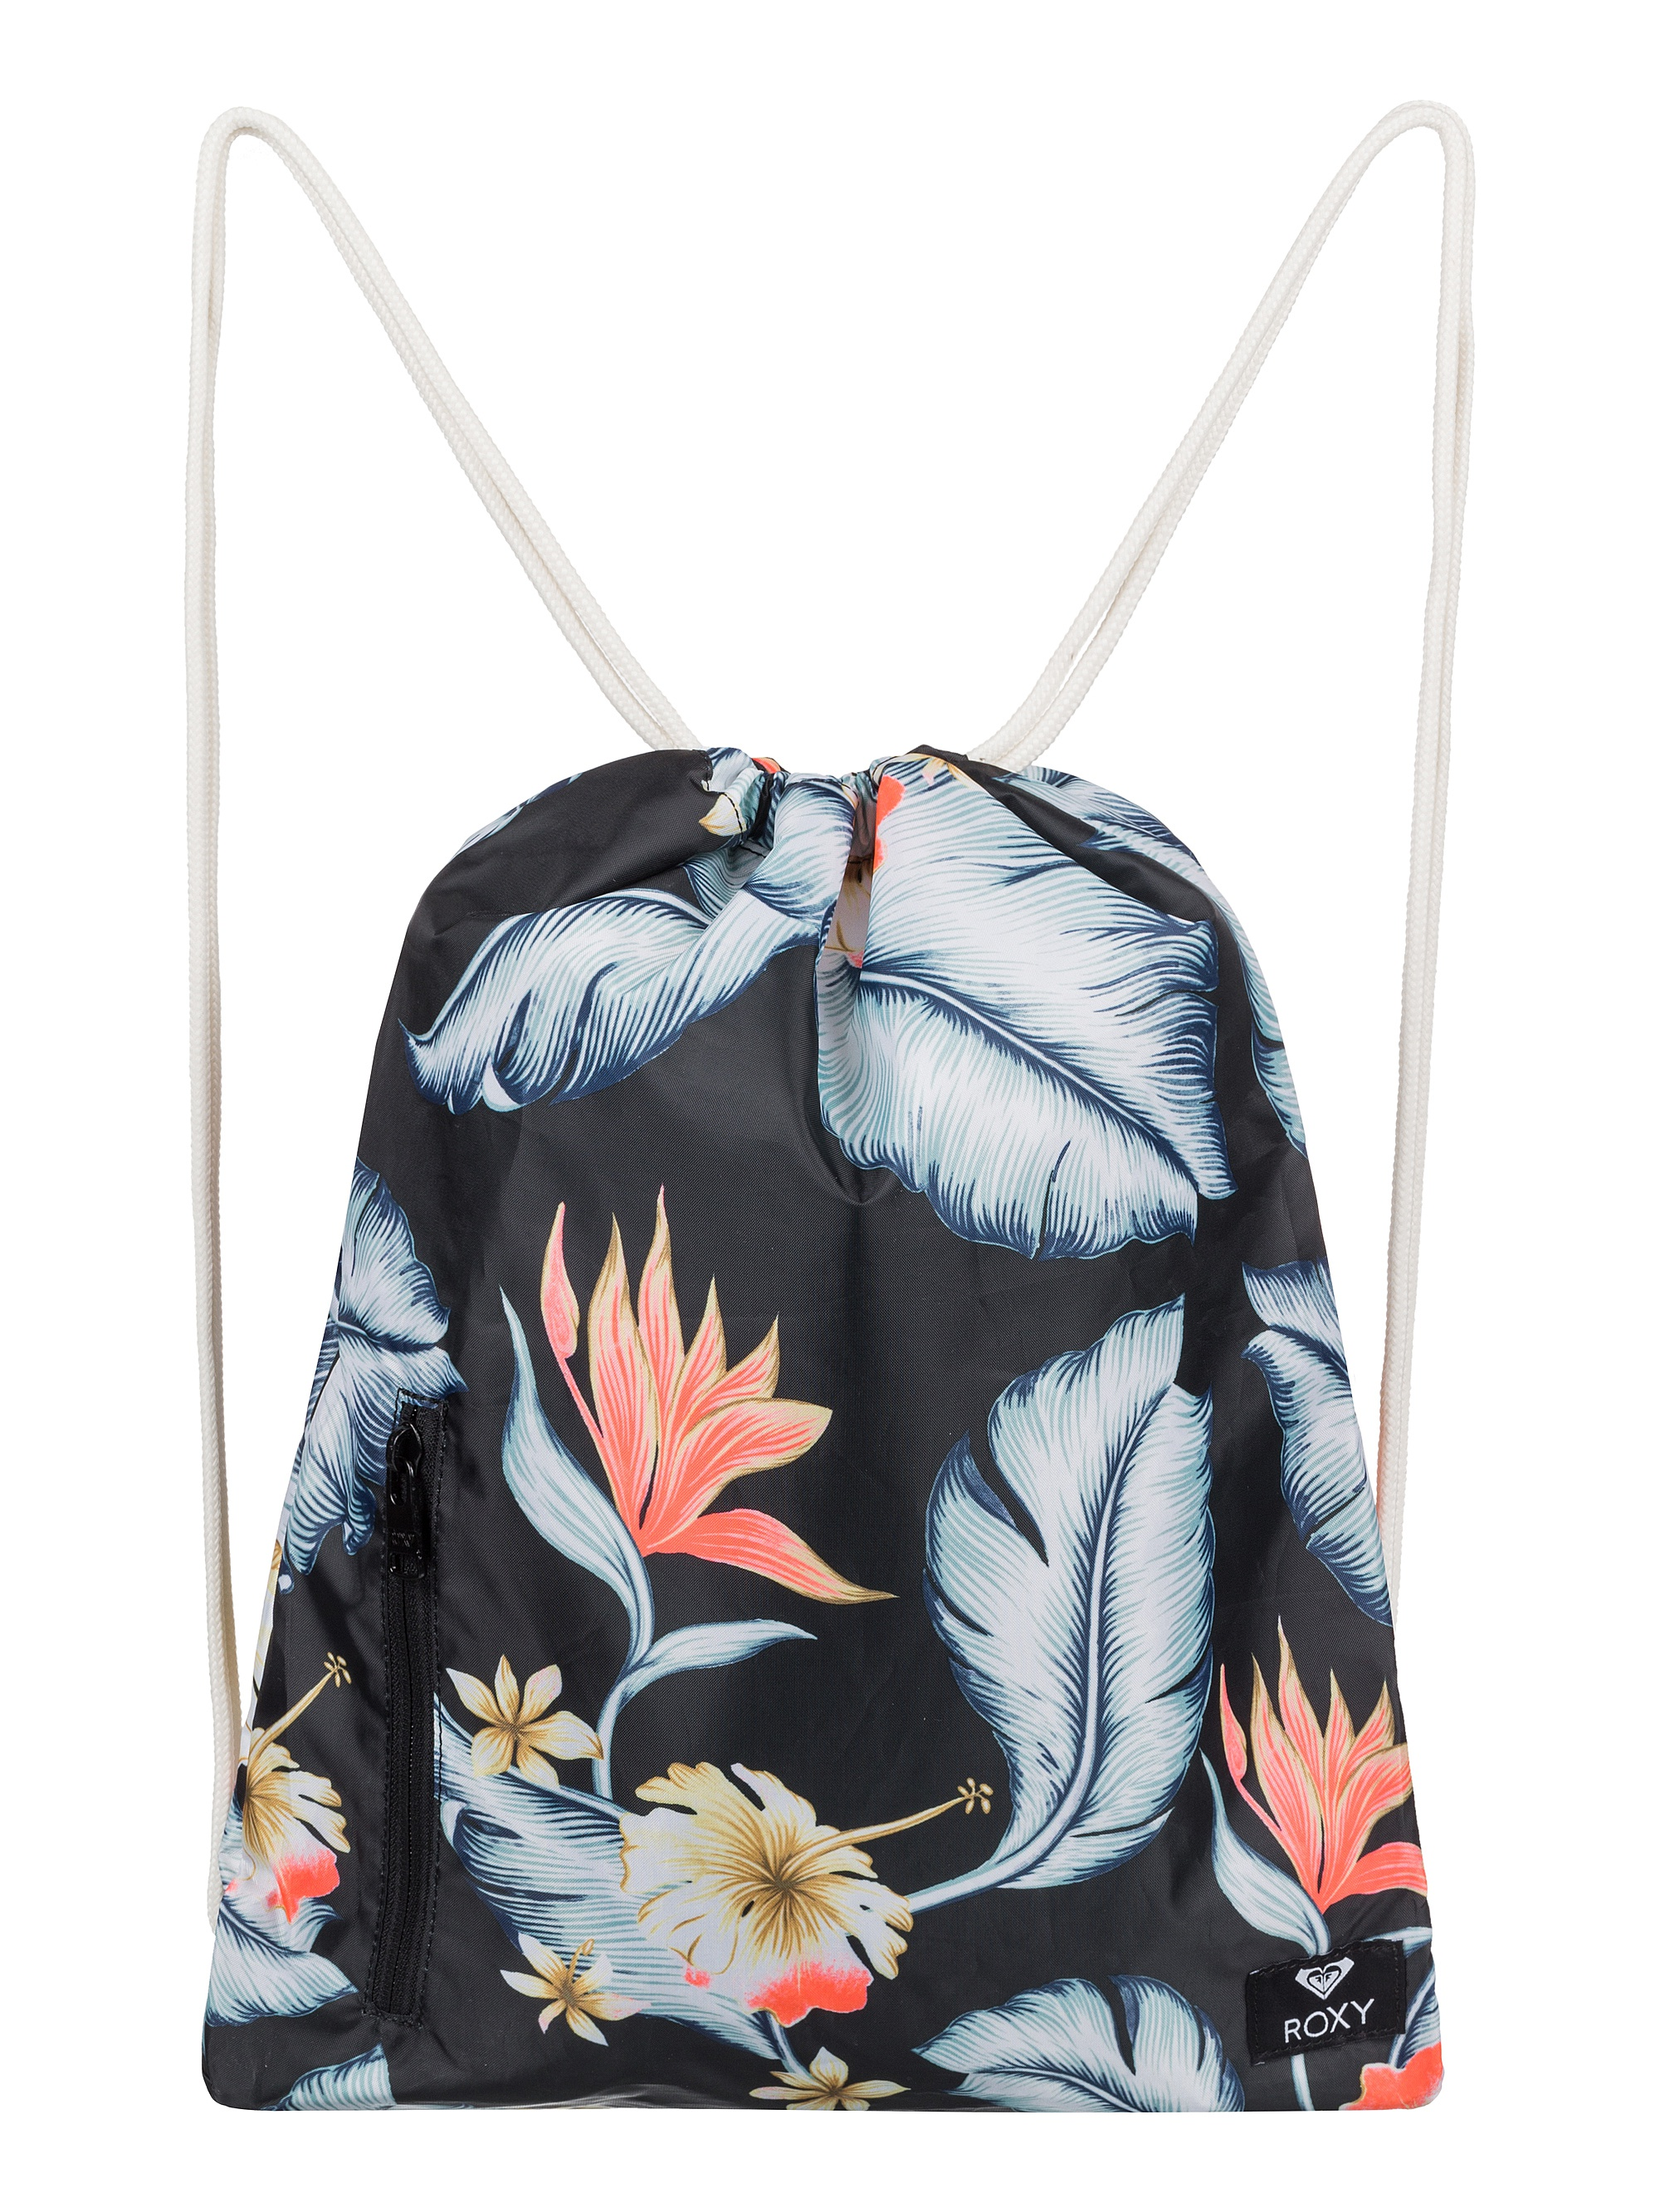 vak Roxy Light As A Feather - KVJ6/Anthracite Tropical Love S one size